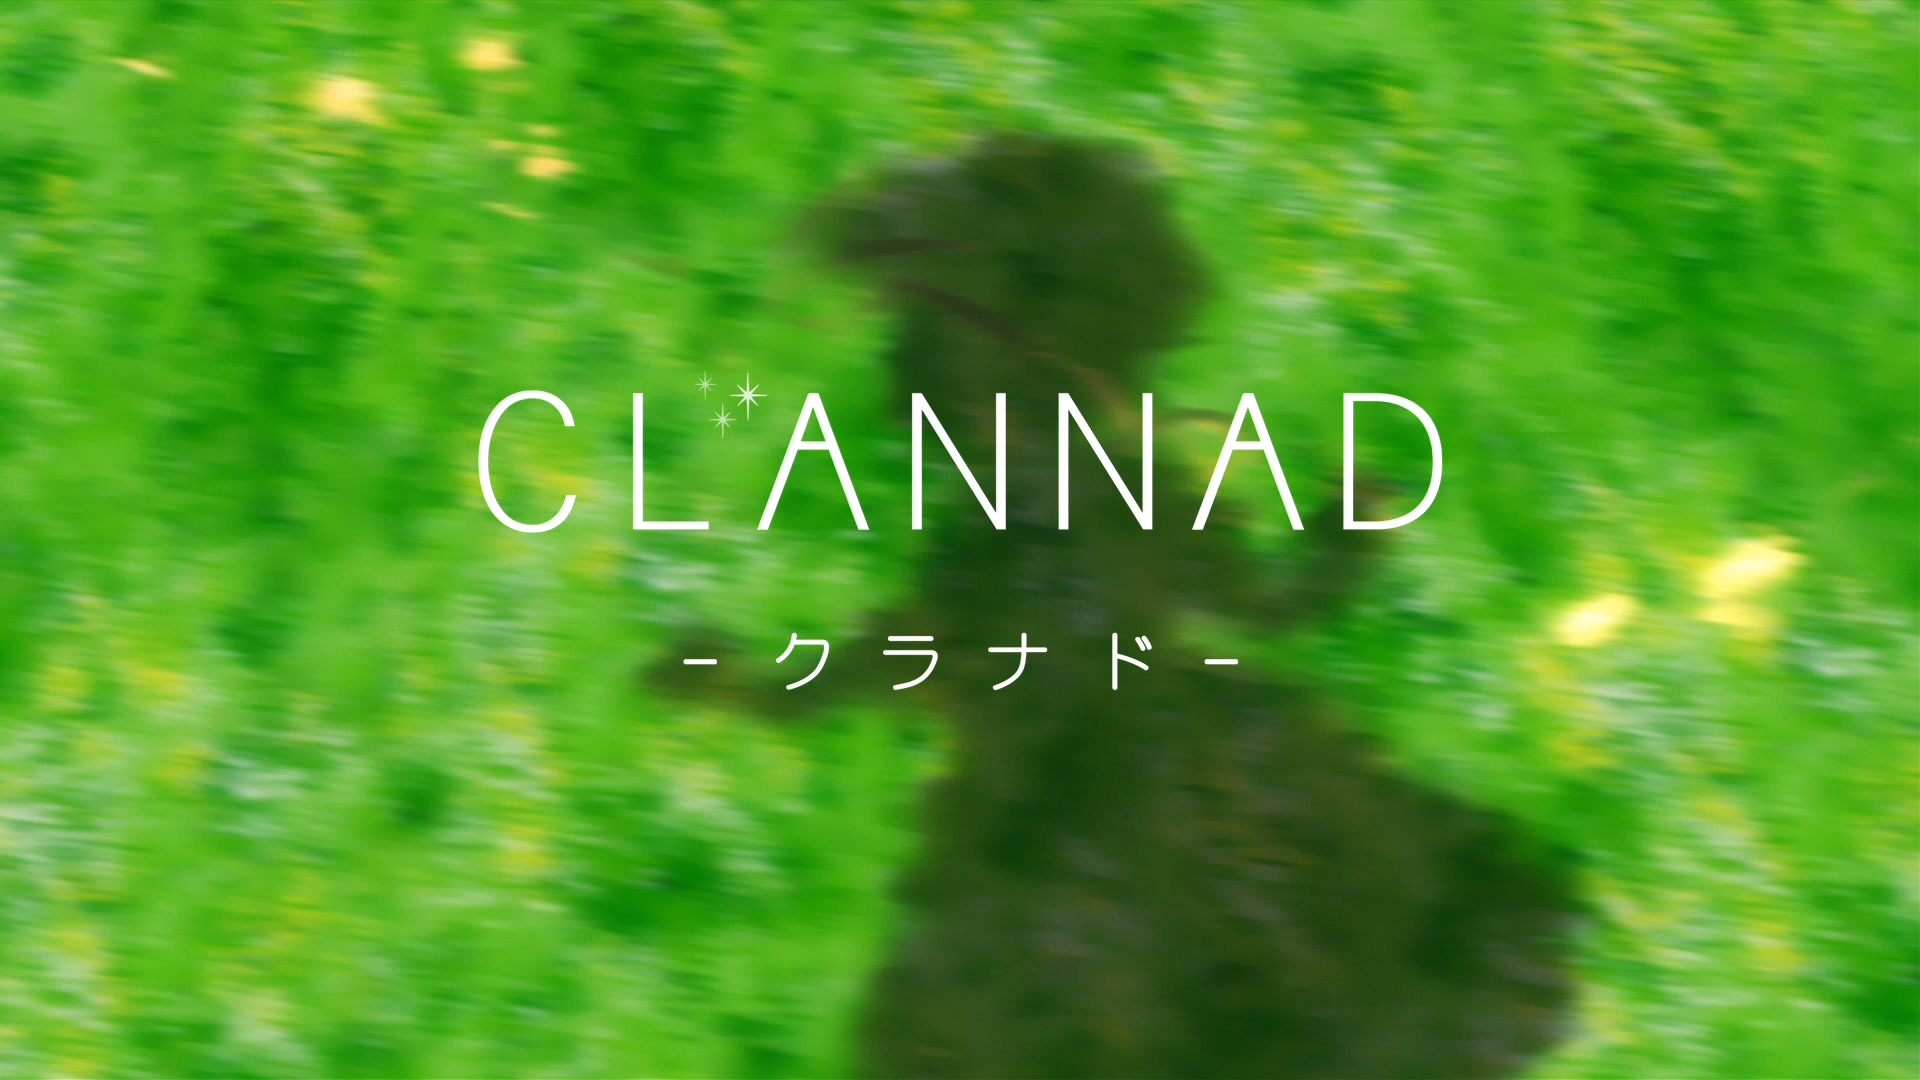 http://images.hologfx.com/Doki/Clannad/Clannad.png